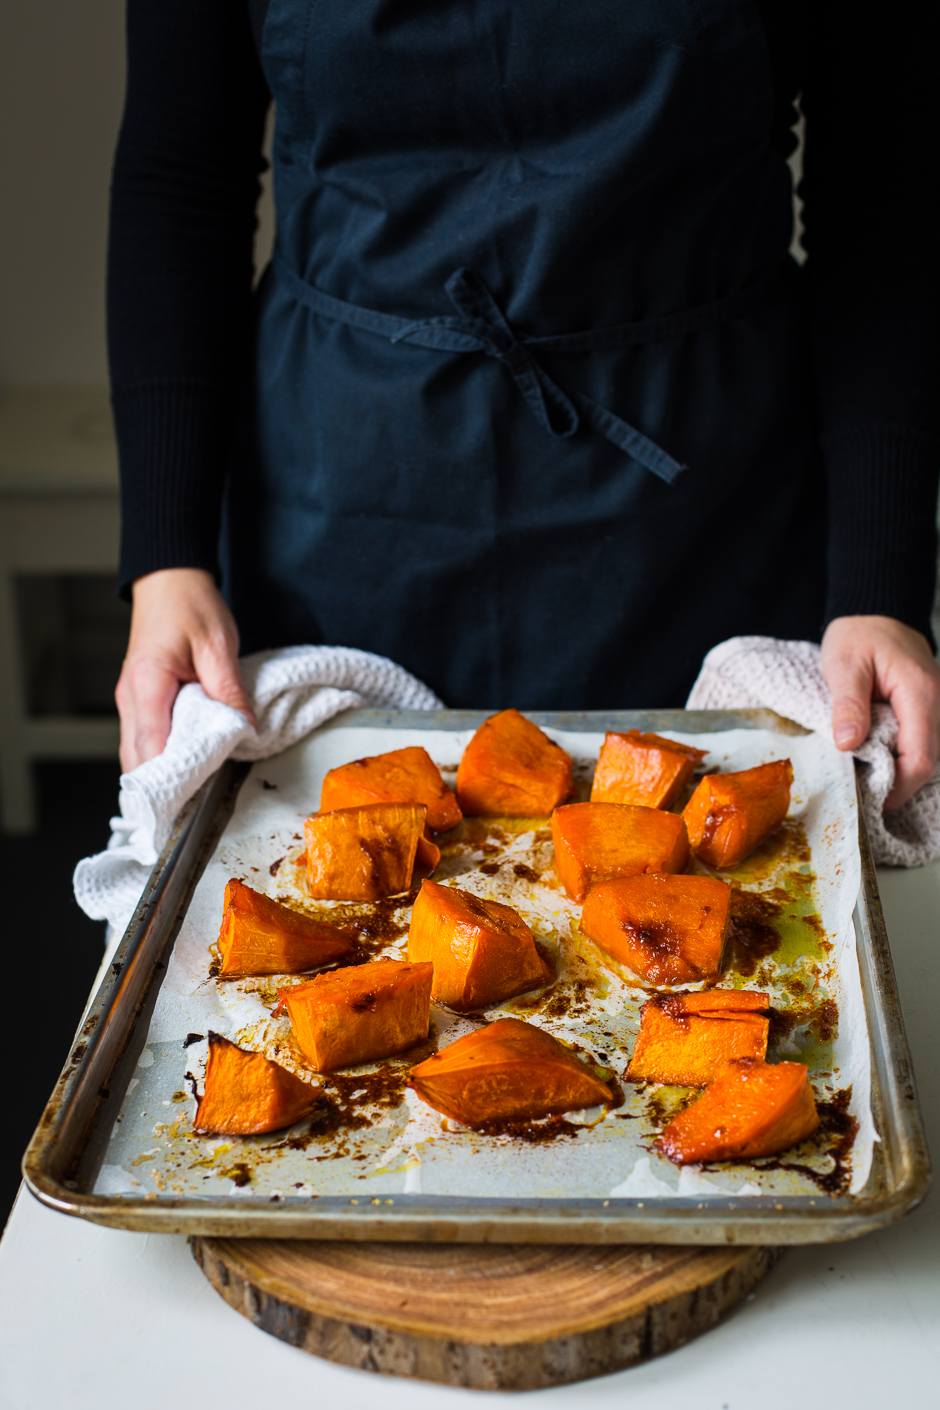 roasted pumpkin from the Taste of Memories Hungarian country kitchen www.tasteofmemories.com